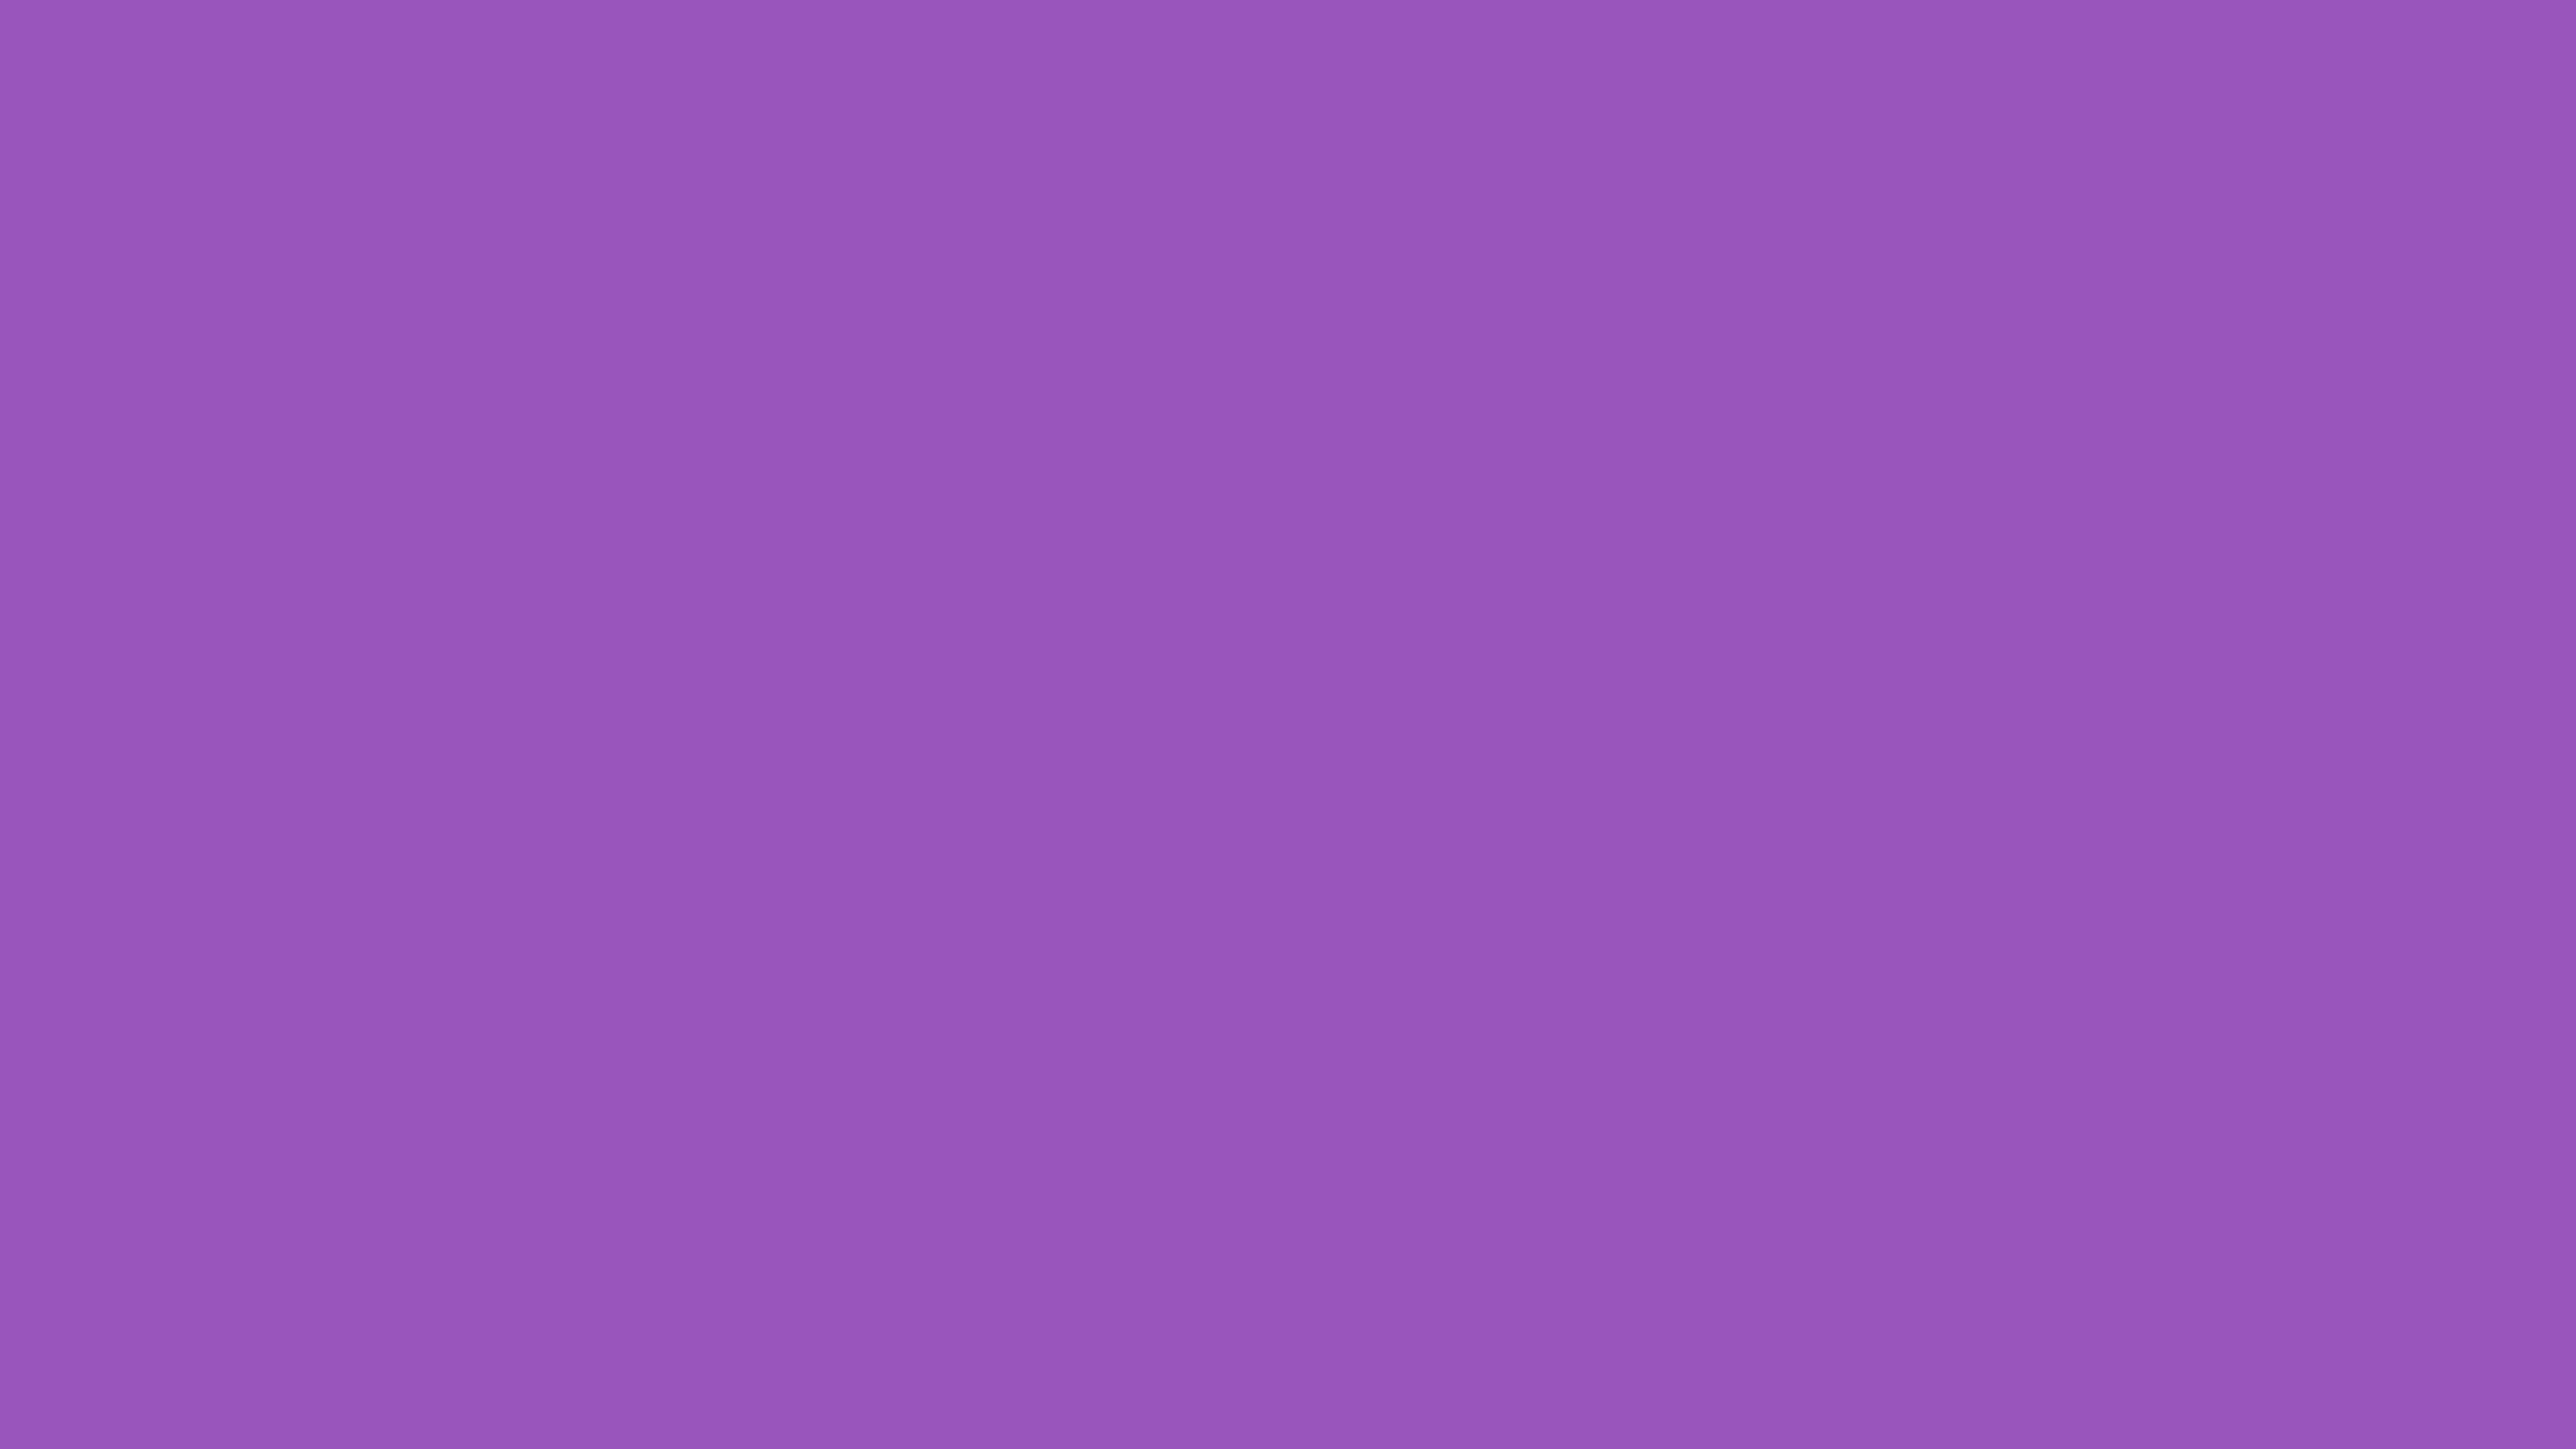 3840x2160 Deep Lilac Solid Color Background